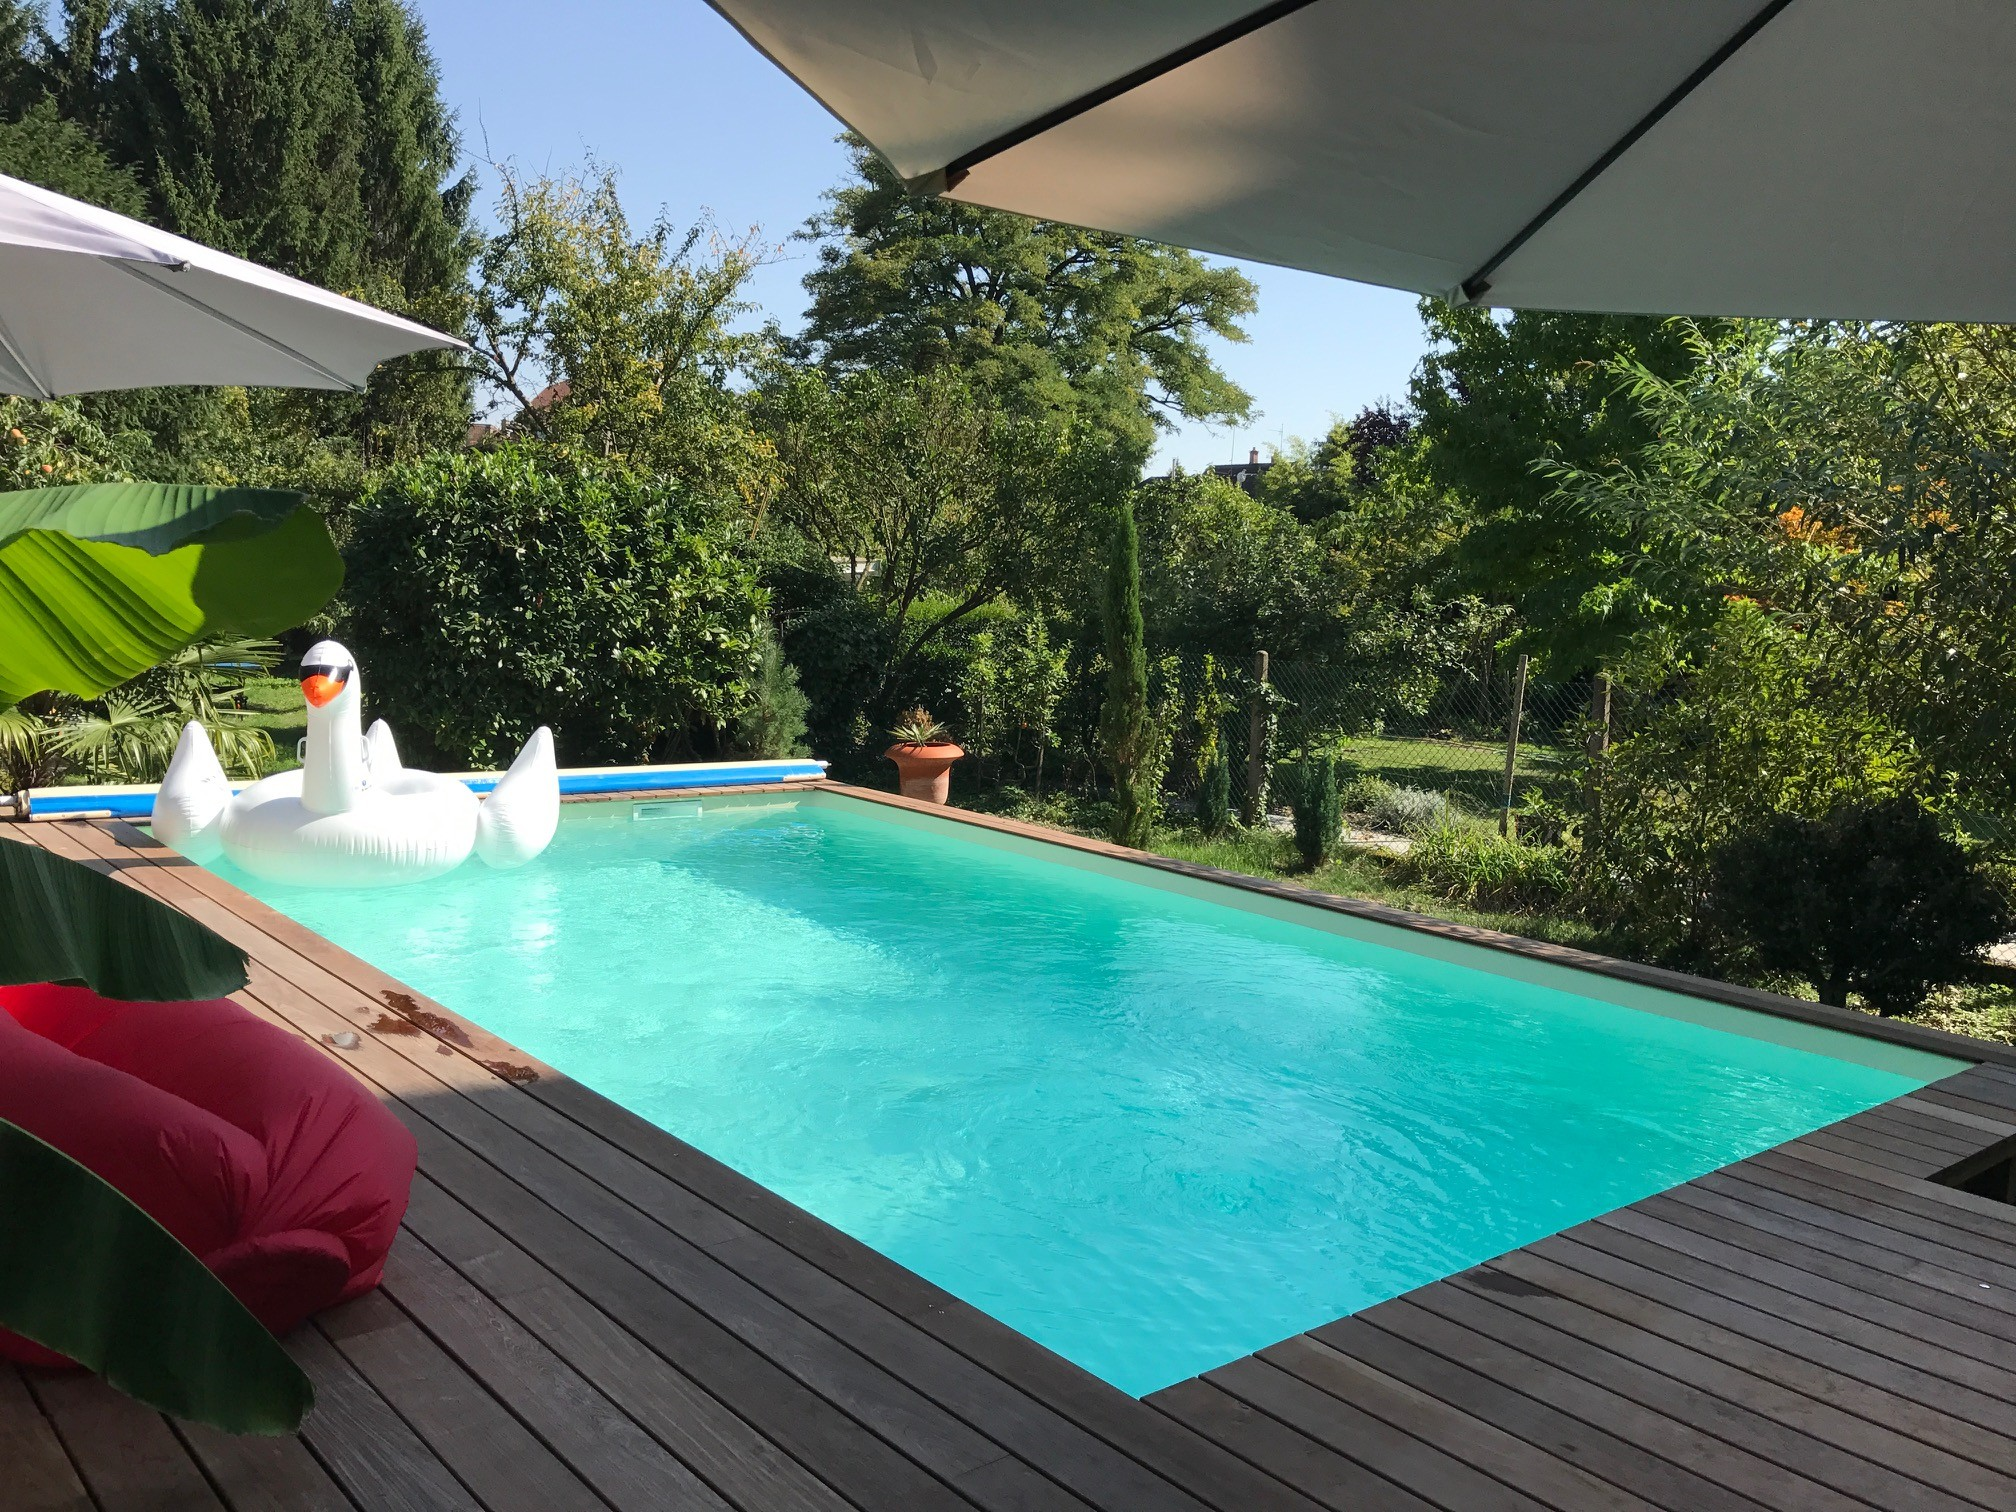 Creation D Une Piscine En Bois De 28m2 A Strasbourg Amenagements